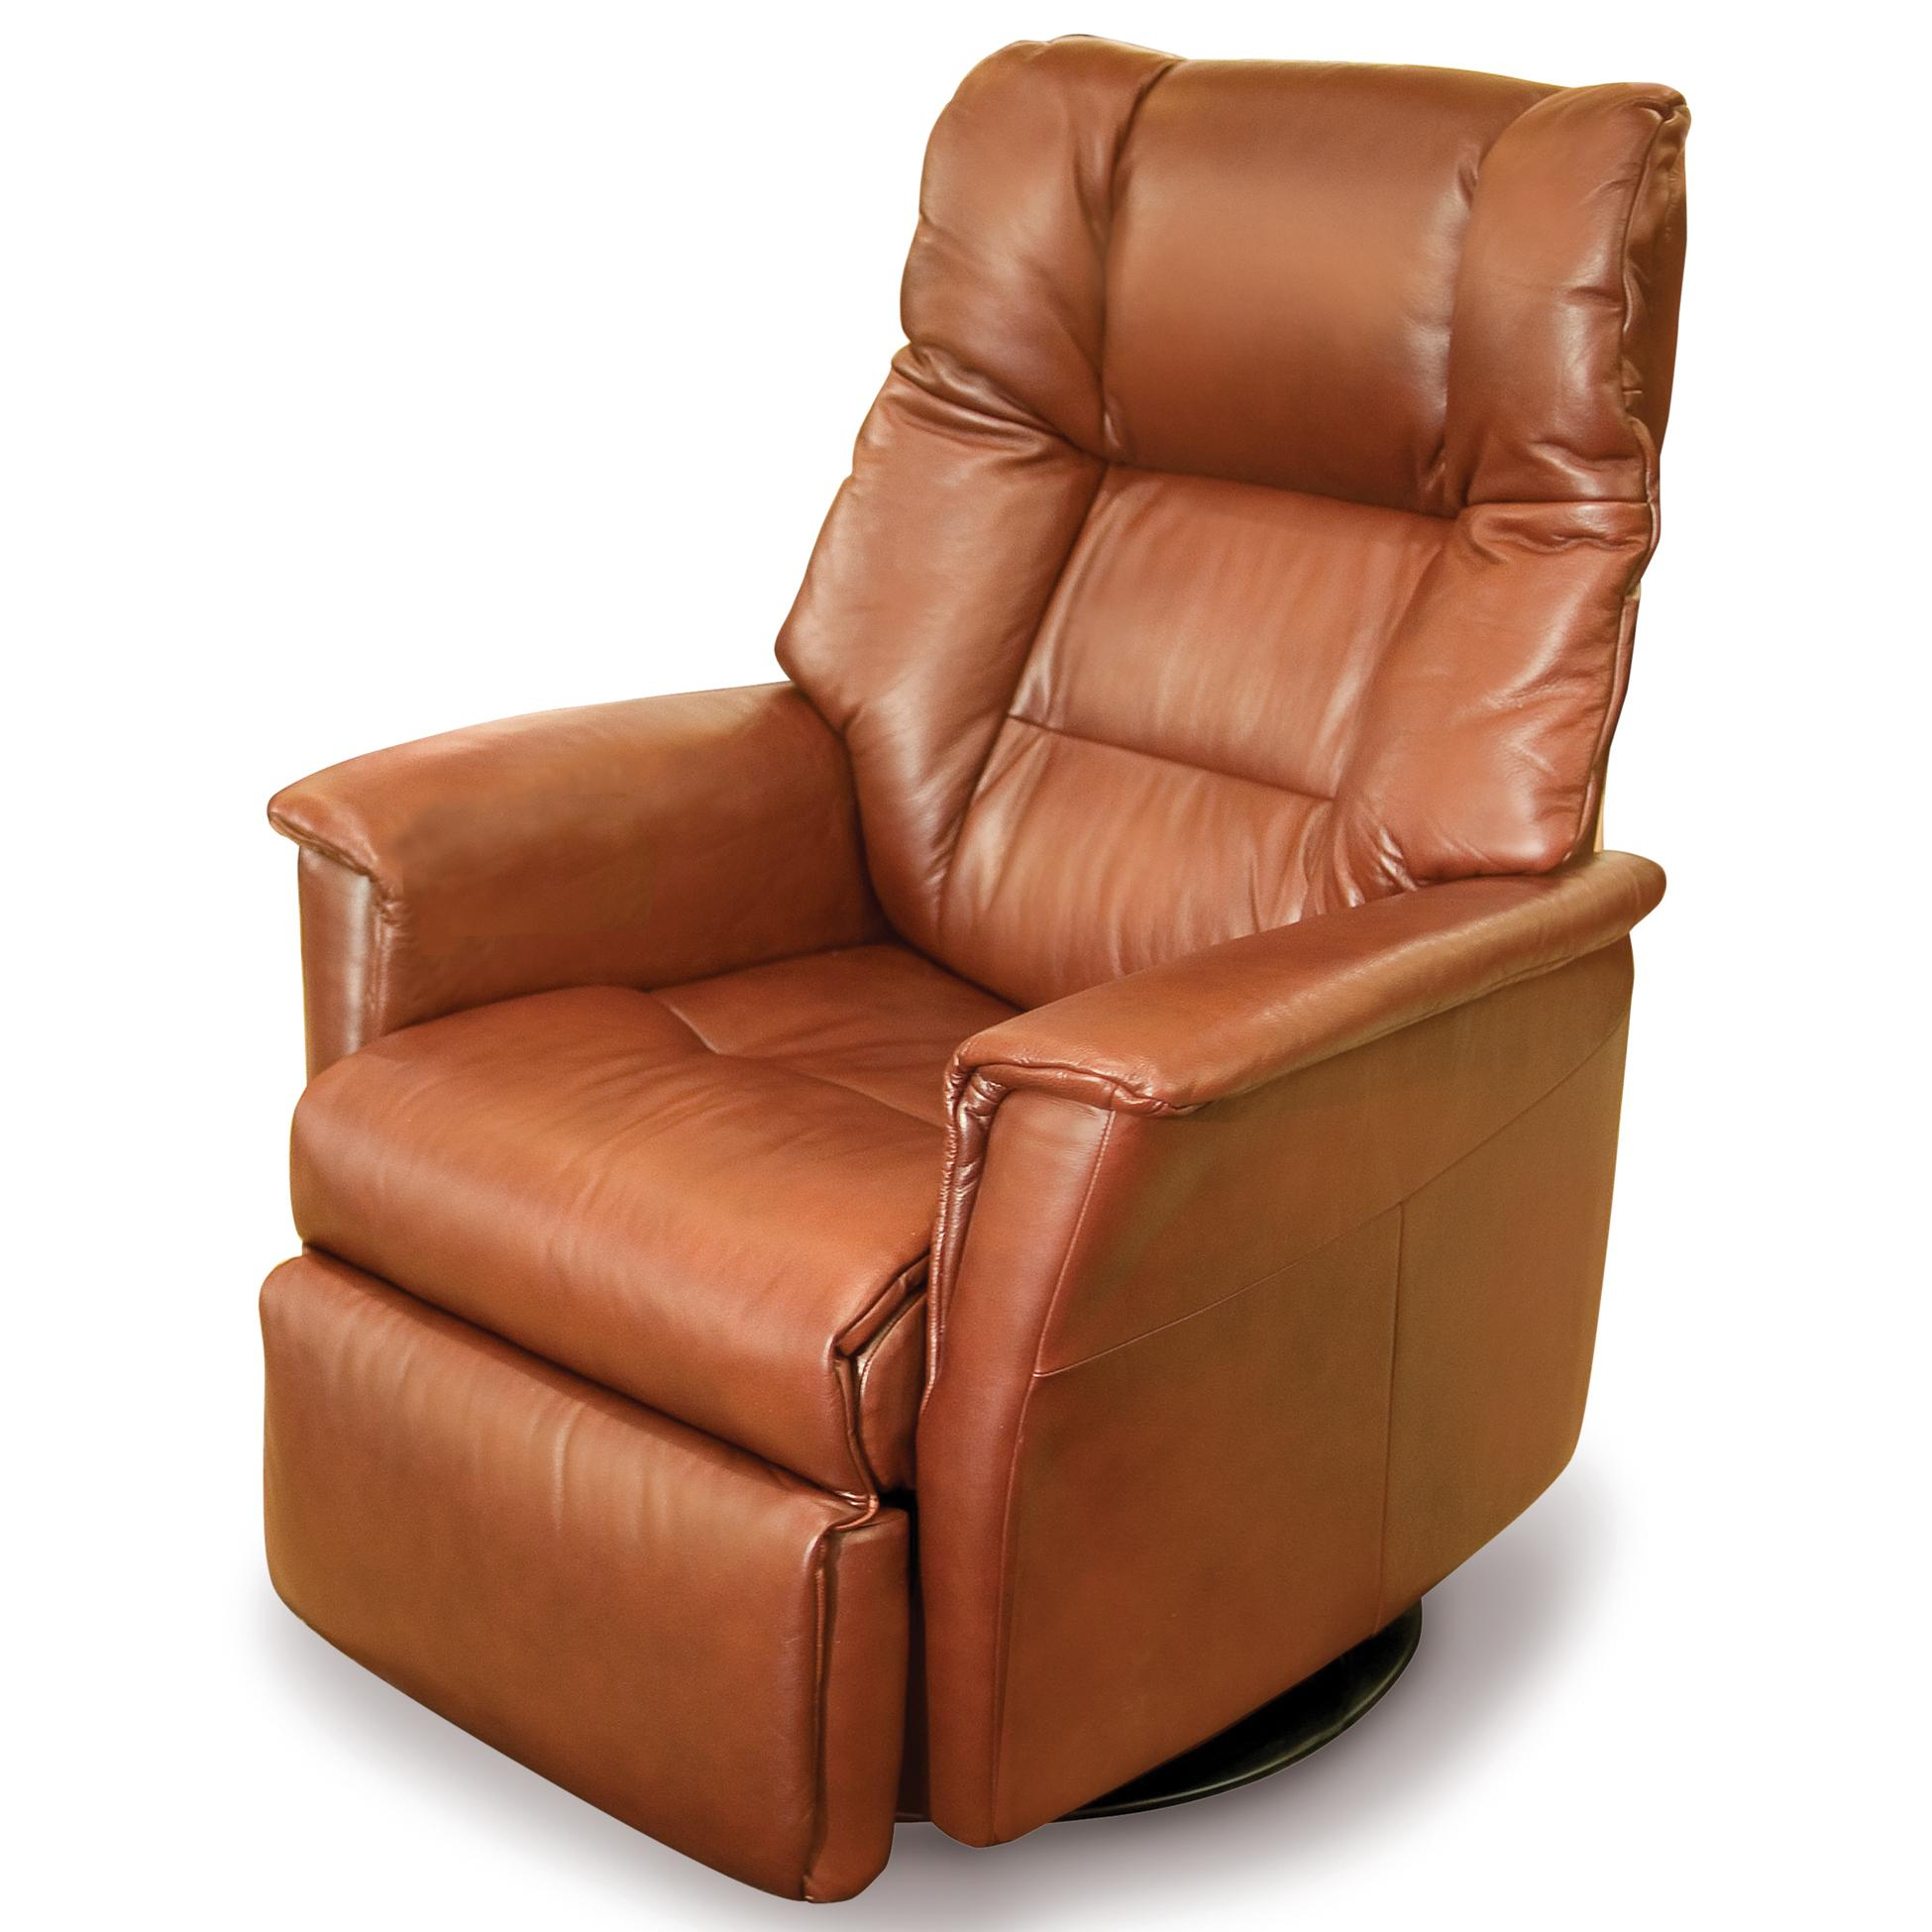 Vendor 508 Recliners Rm295 Modern Verona Recliner Relaxer With Swivel Base Becker Furniture Three Way Recliners